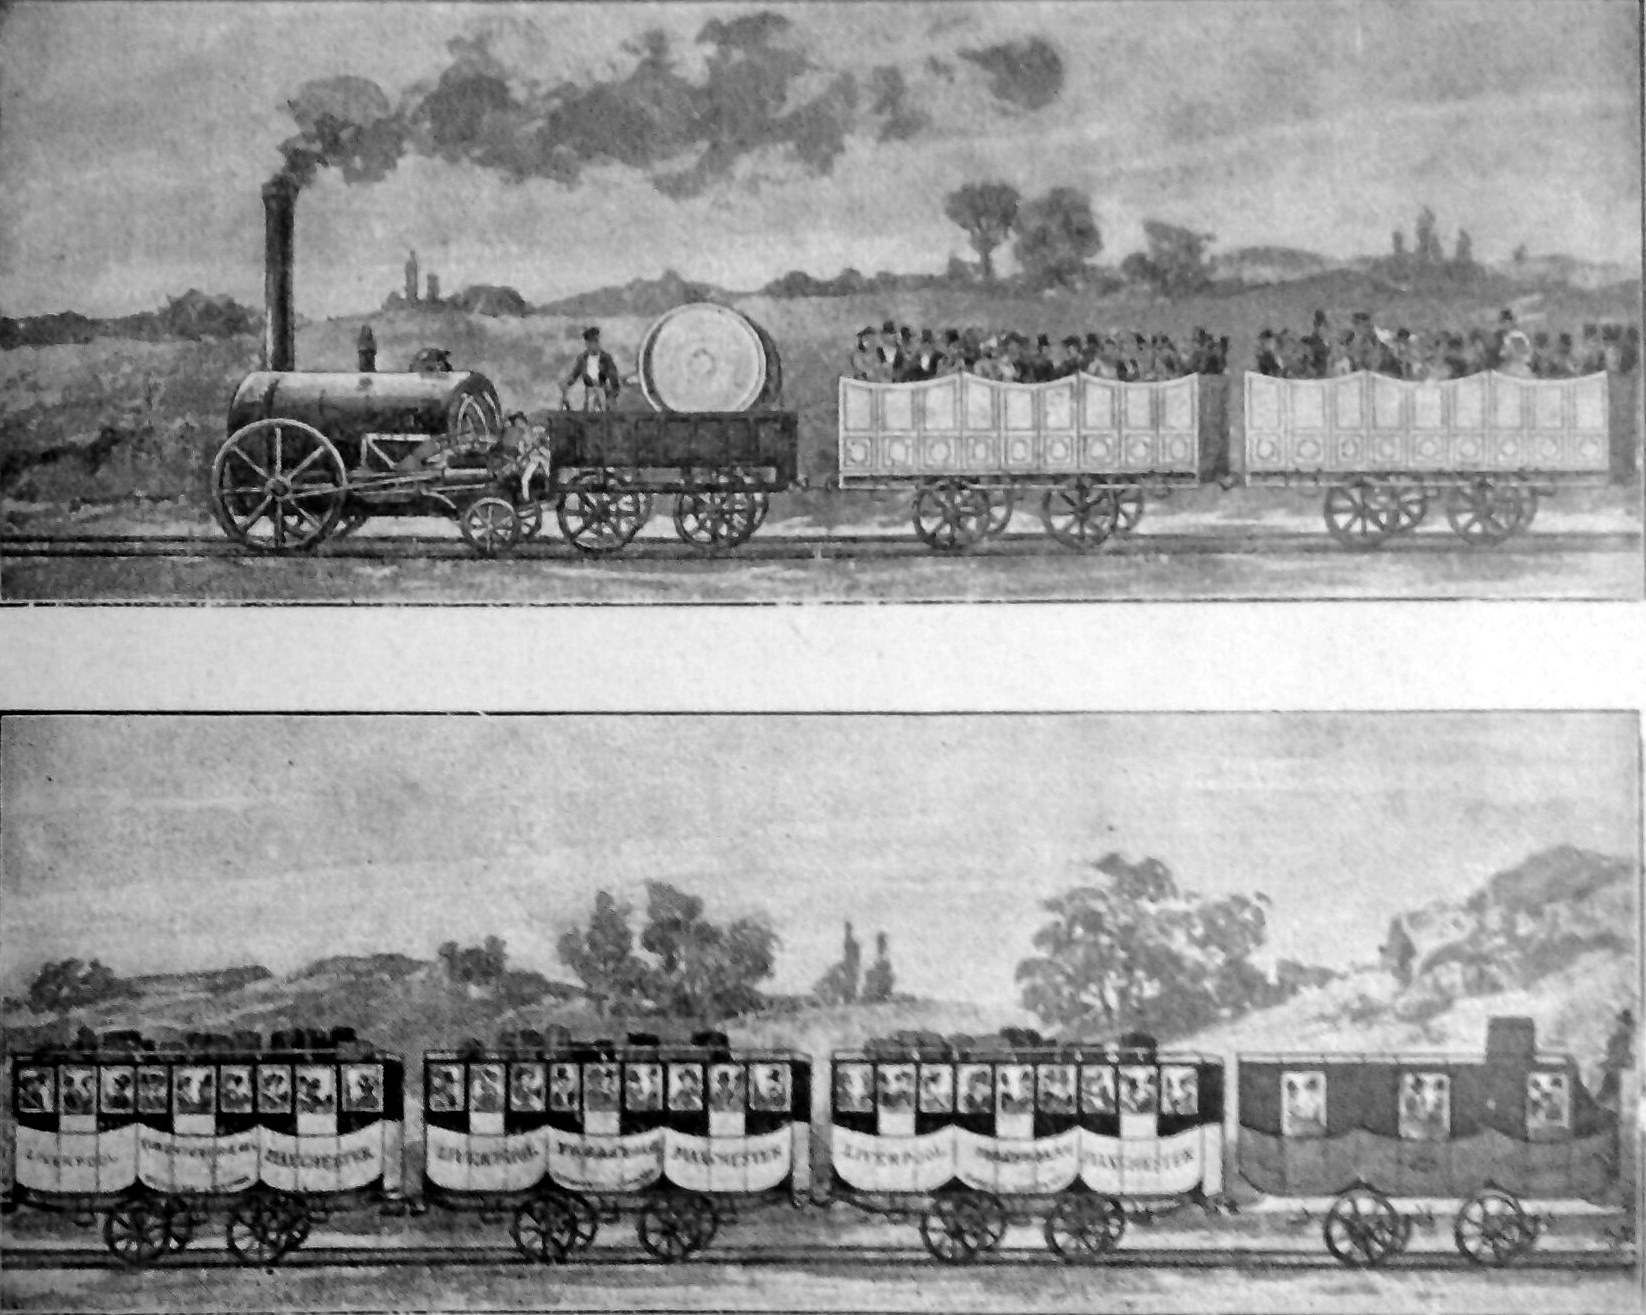 The Liverpool & Manchester Railway, 1830, from an engraving made in 1910.